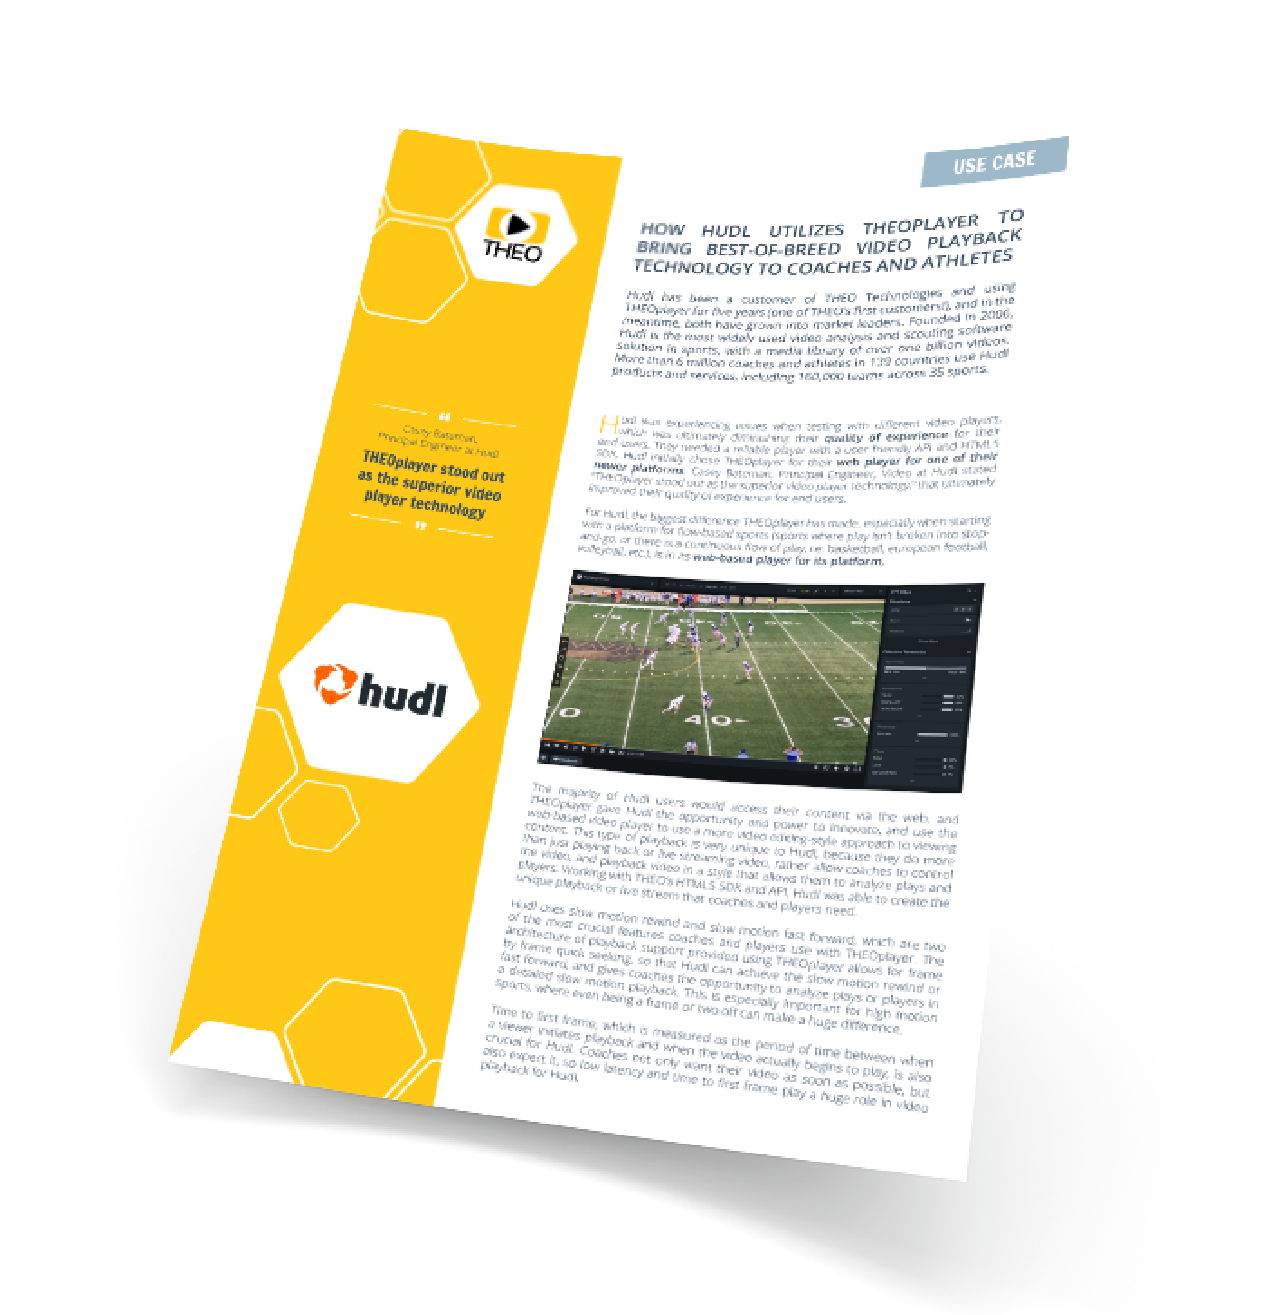 THEOplayer and Hudl bring best-of-breed video playback technology